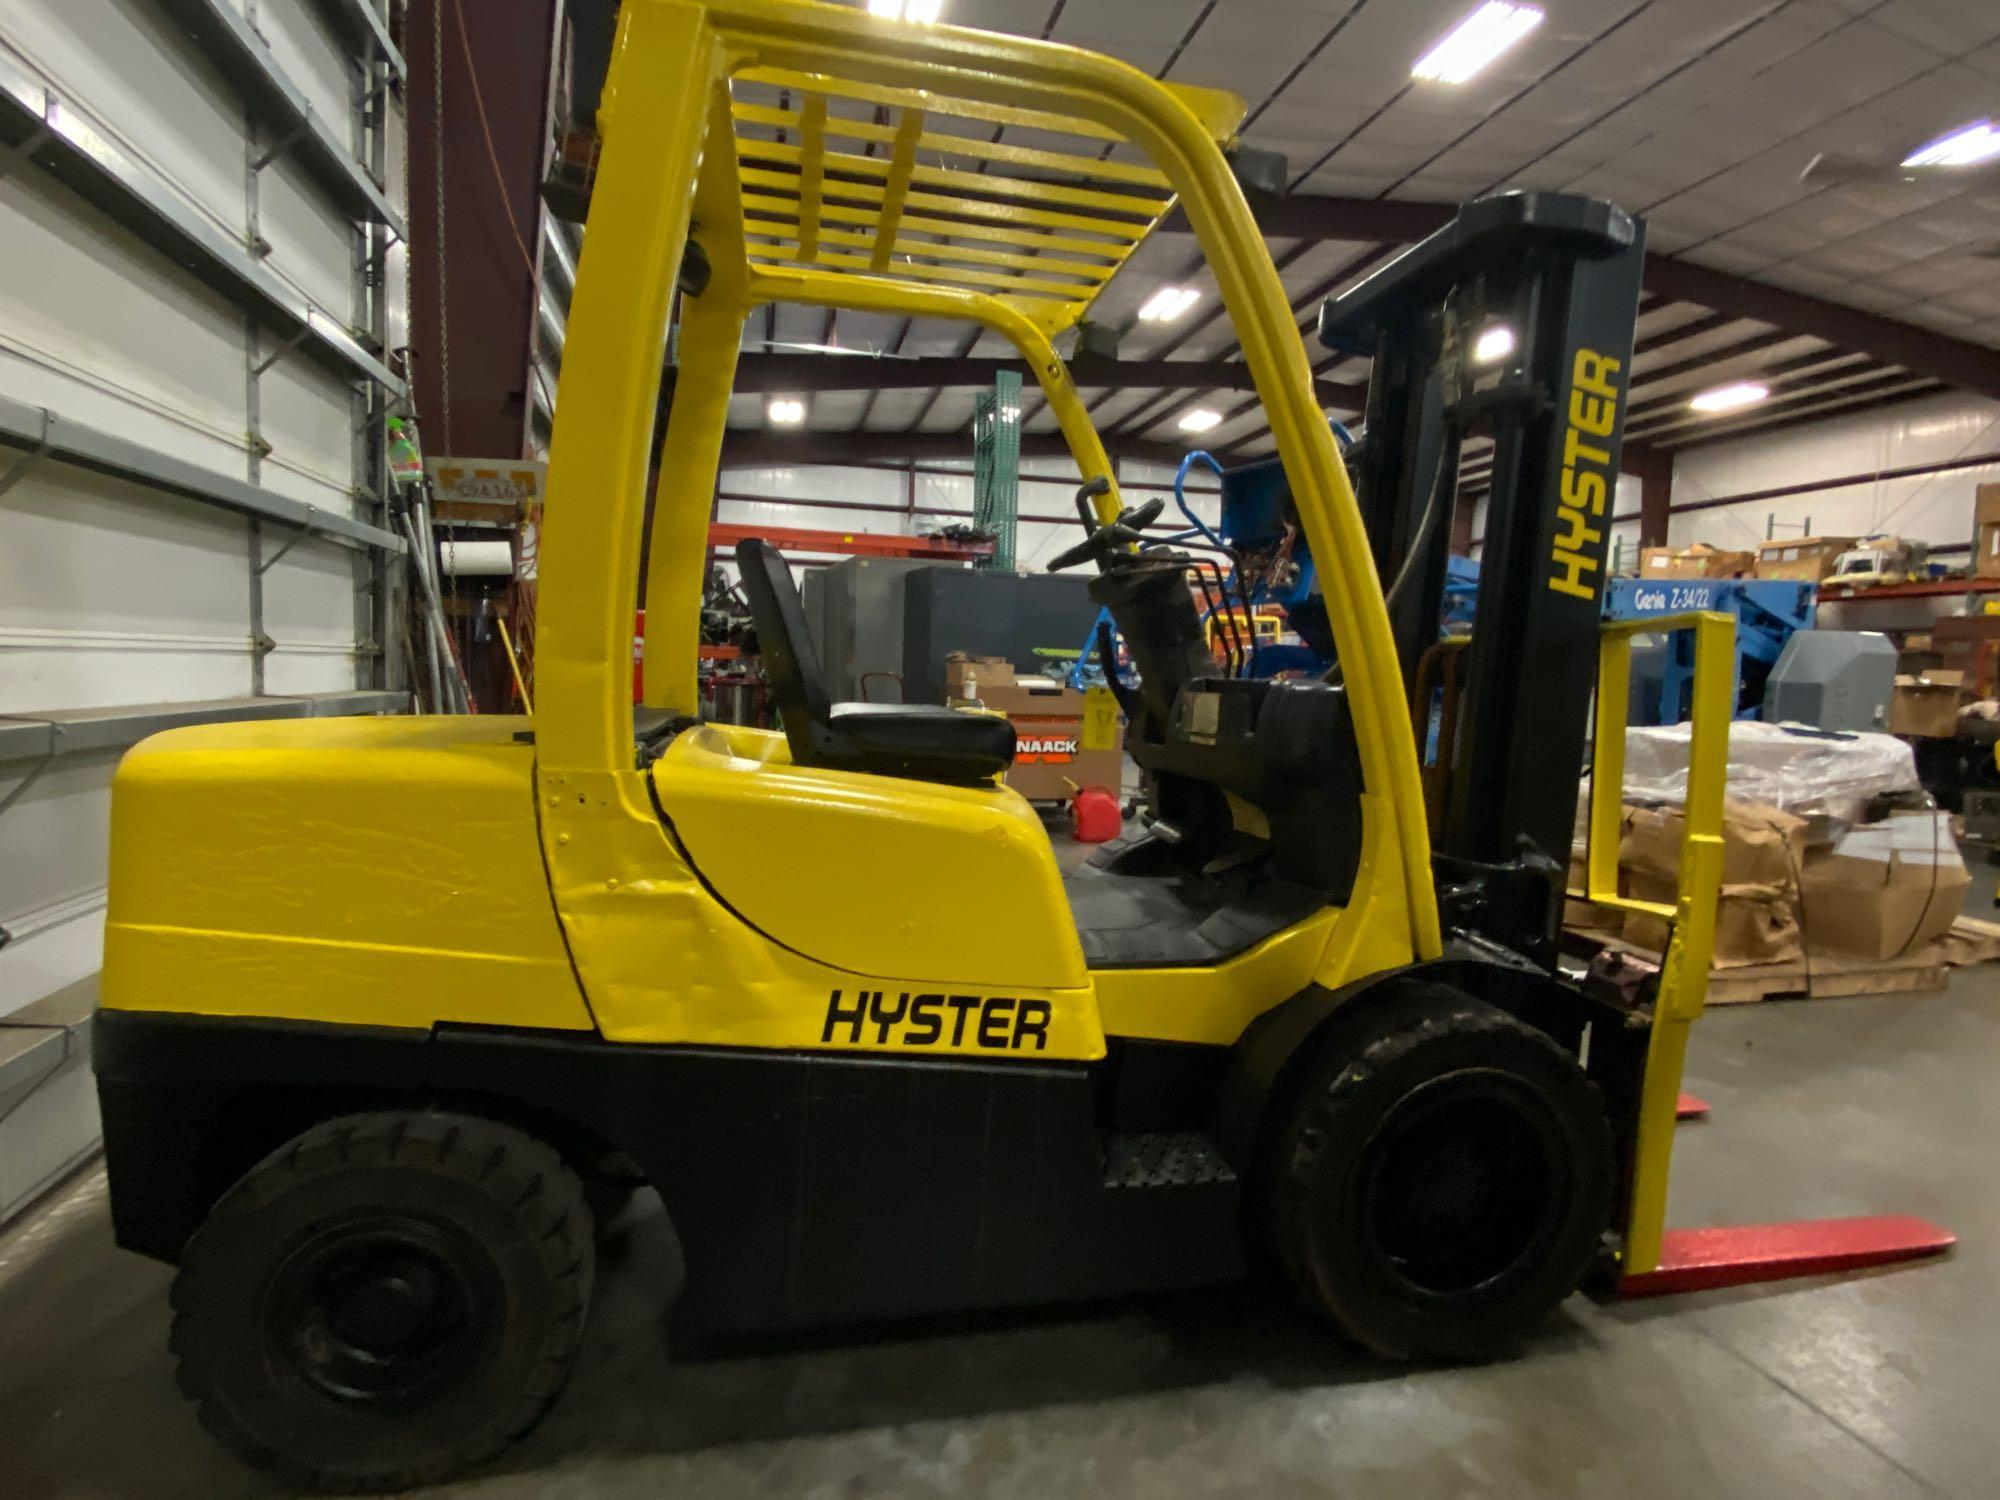 """HYSTER H70FT FORKLIFT, APPROX. 7,000 LB CAPACITY, 181.9"""" HEIGHT CAP, TILT, RUNS AND OPERATES - Image 4 of 10"""